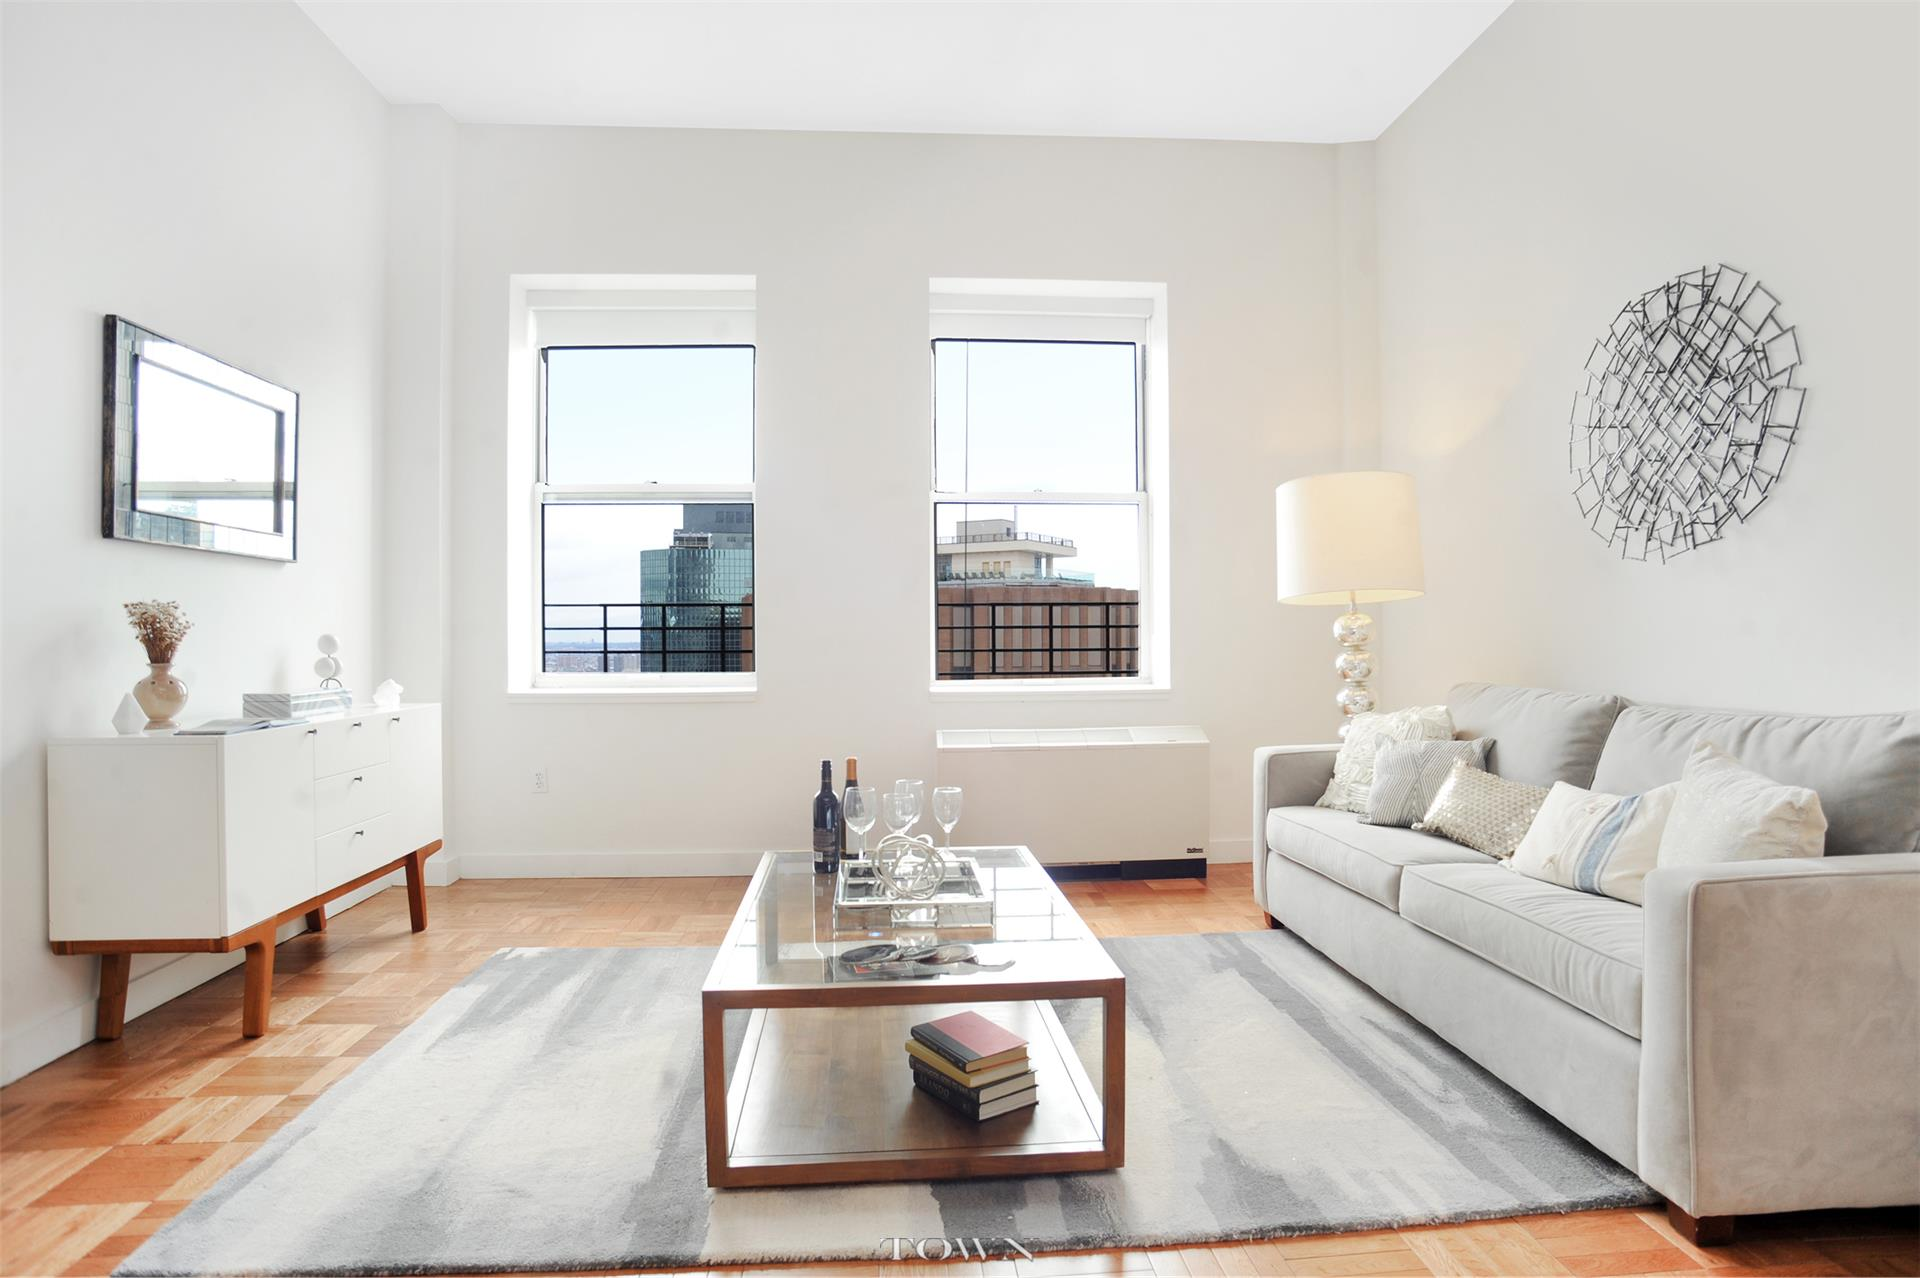 Rentals for Rent at 20 Exchange Place, #4707 20 Exchange Place New York, New York 10005 United States